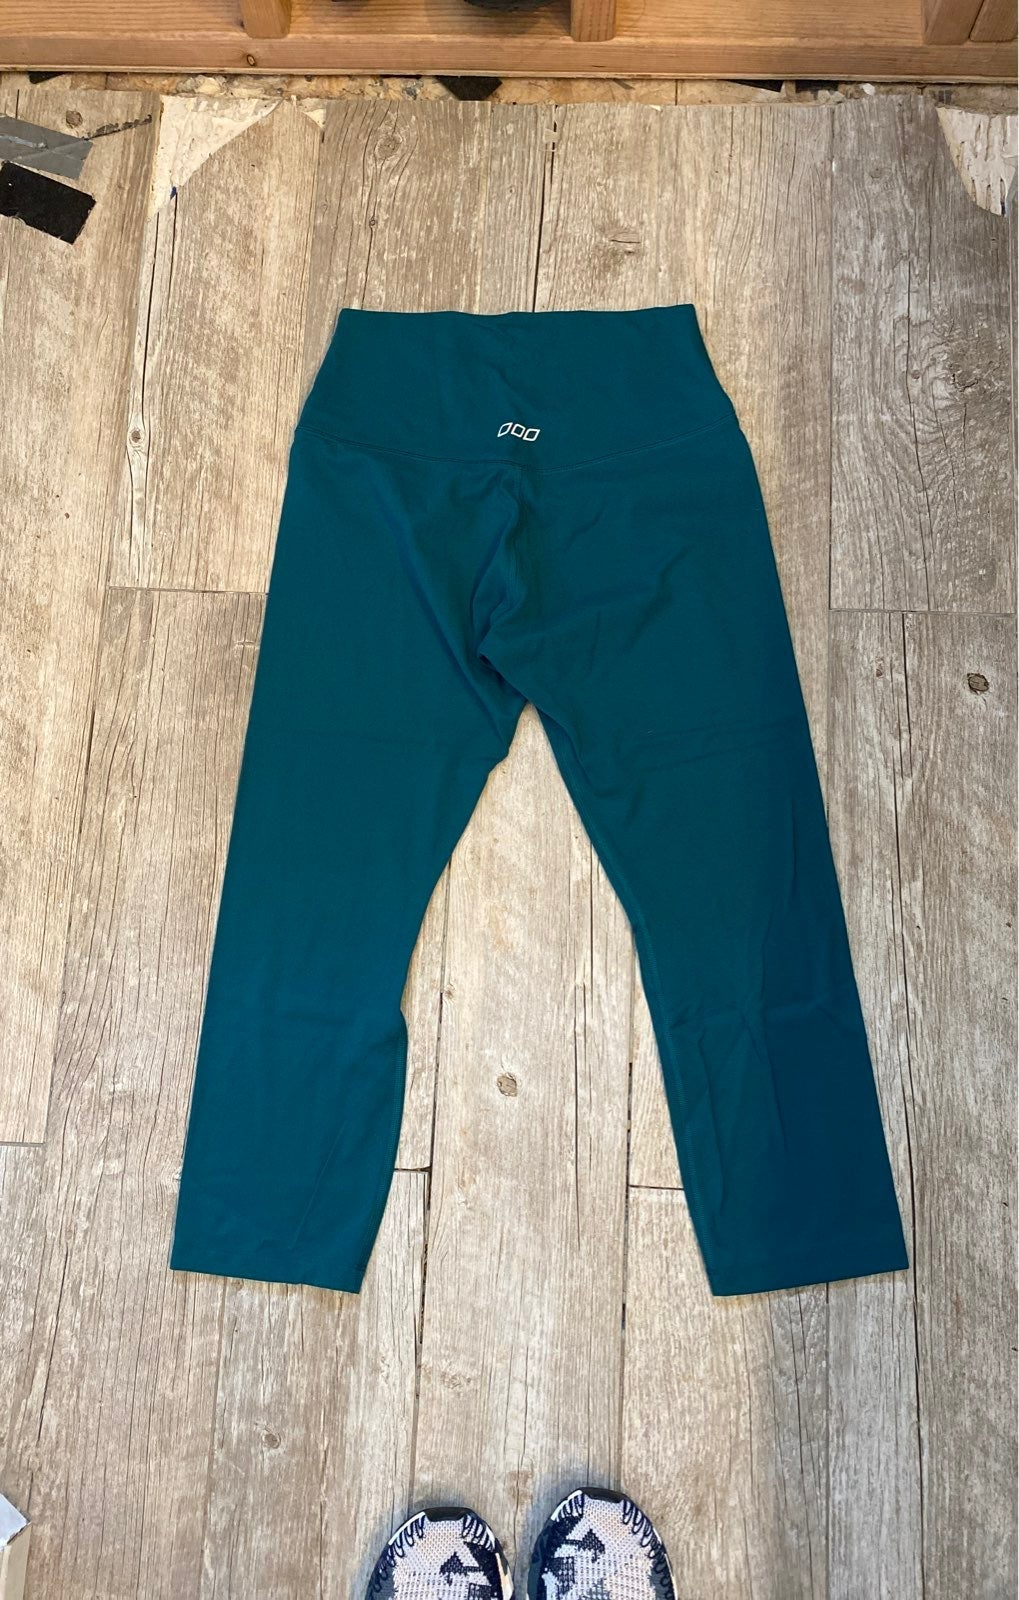 Lorna Jane capri leggings in teal